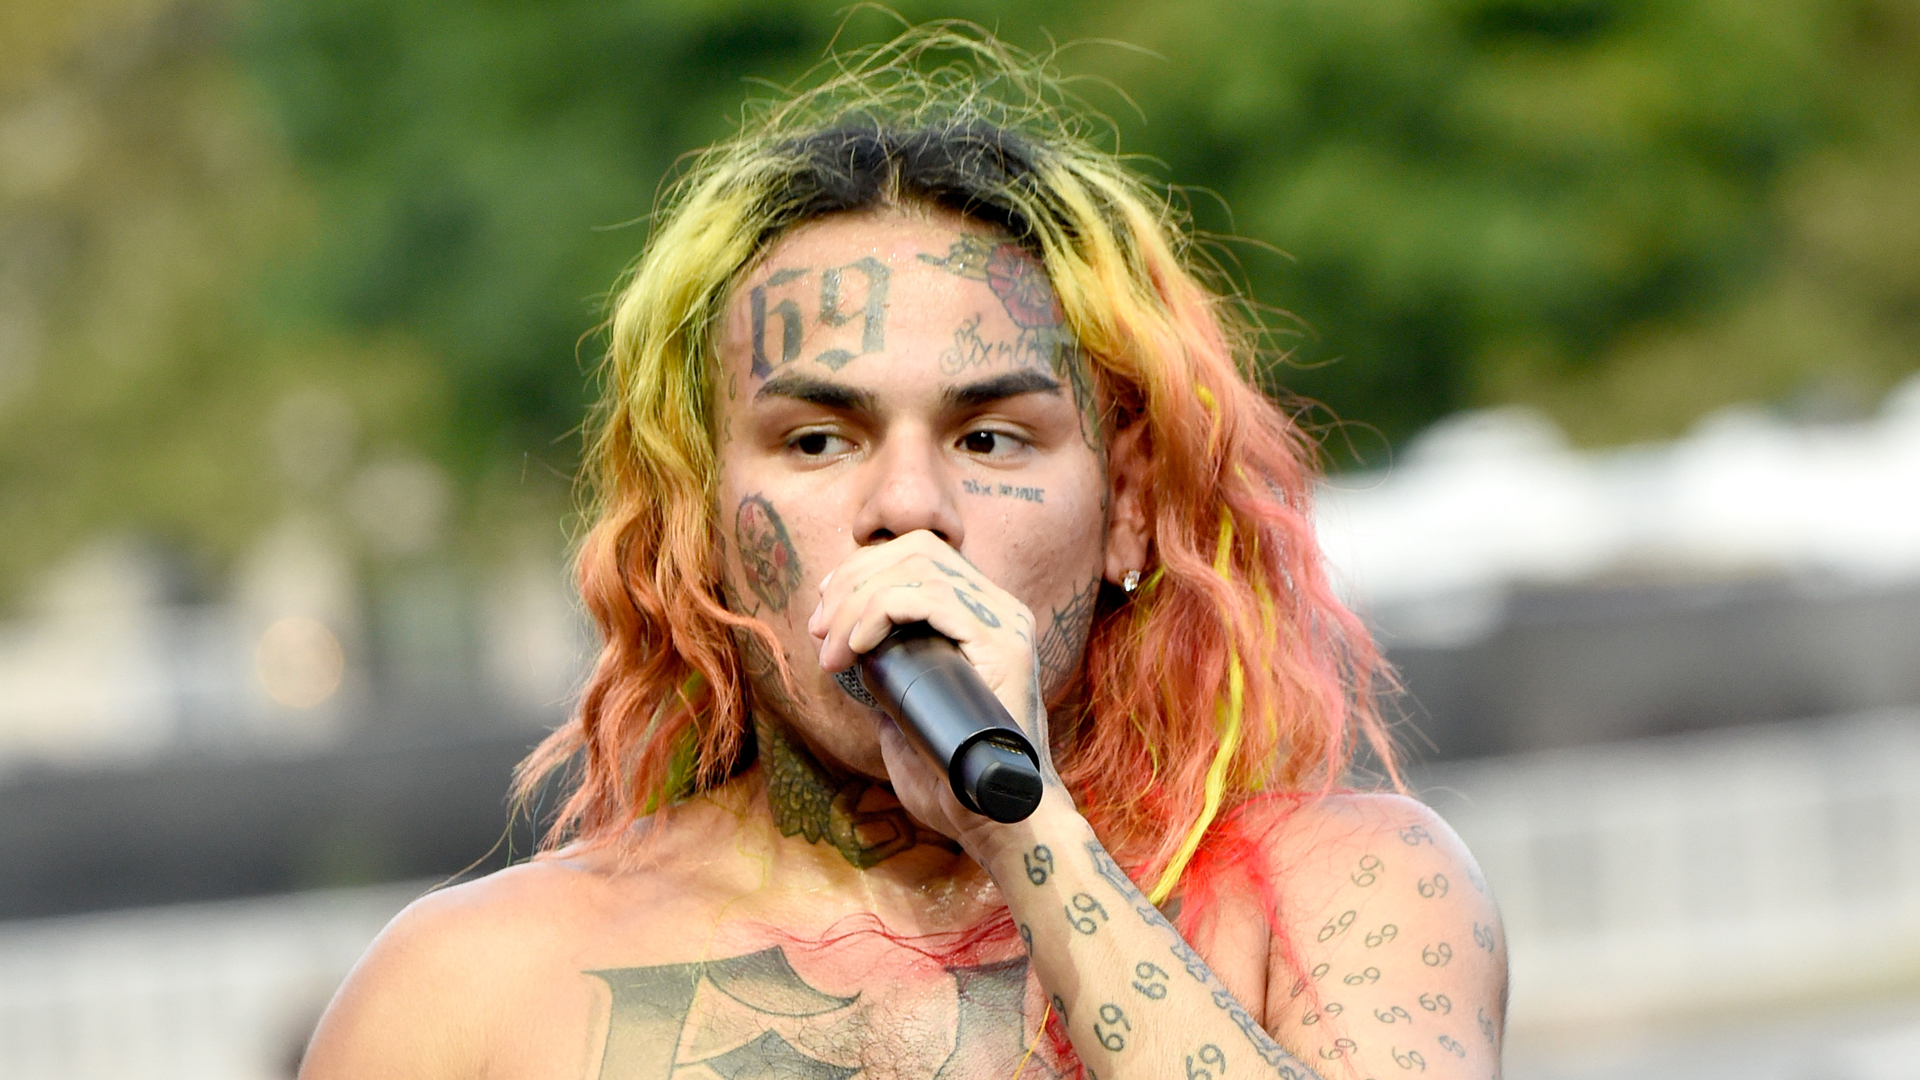 Outlining 6ix9ine's Next Steps: 'Nobody Is Going to Want to Hear About How Gangster You Are'